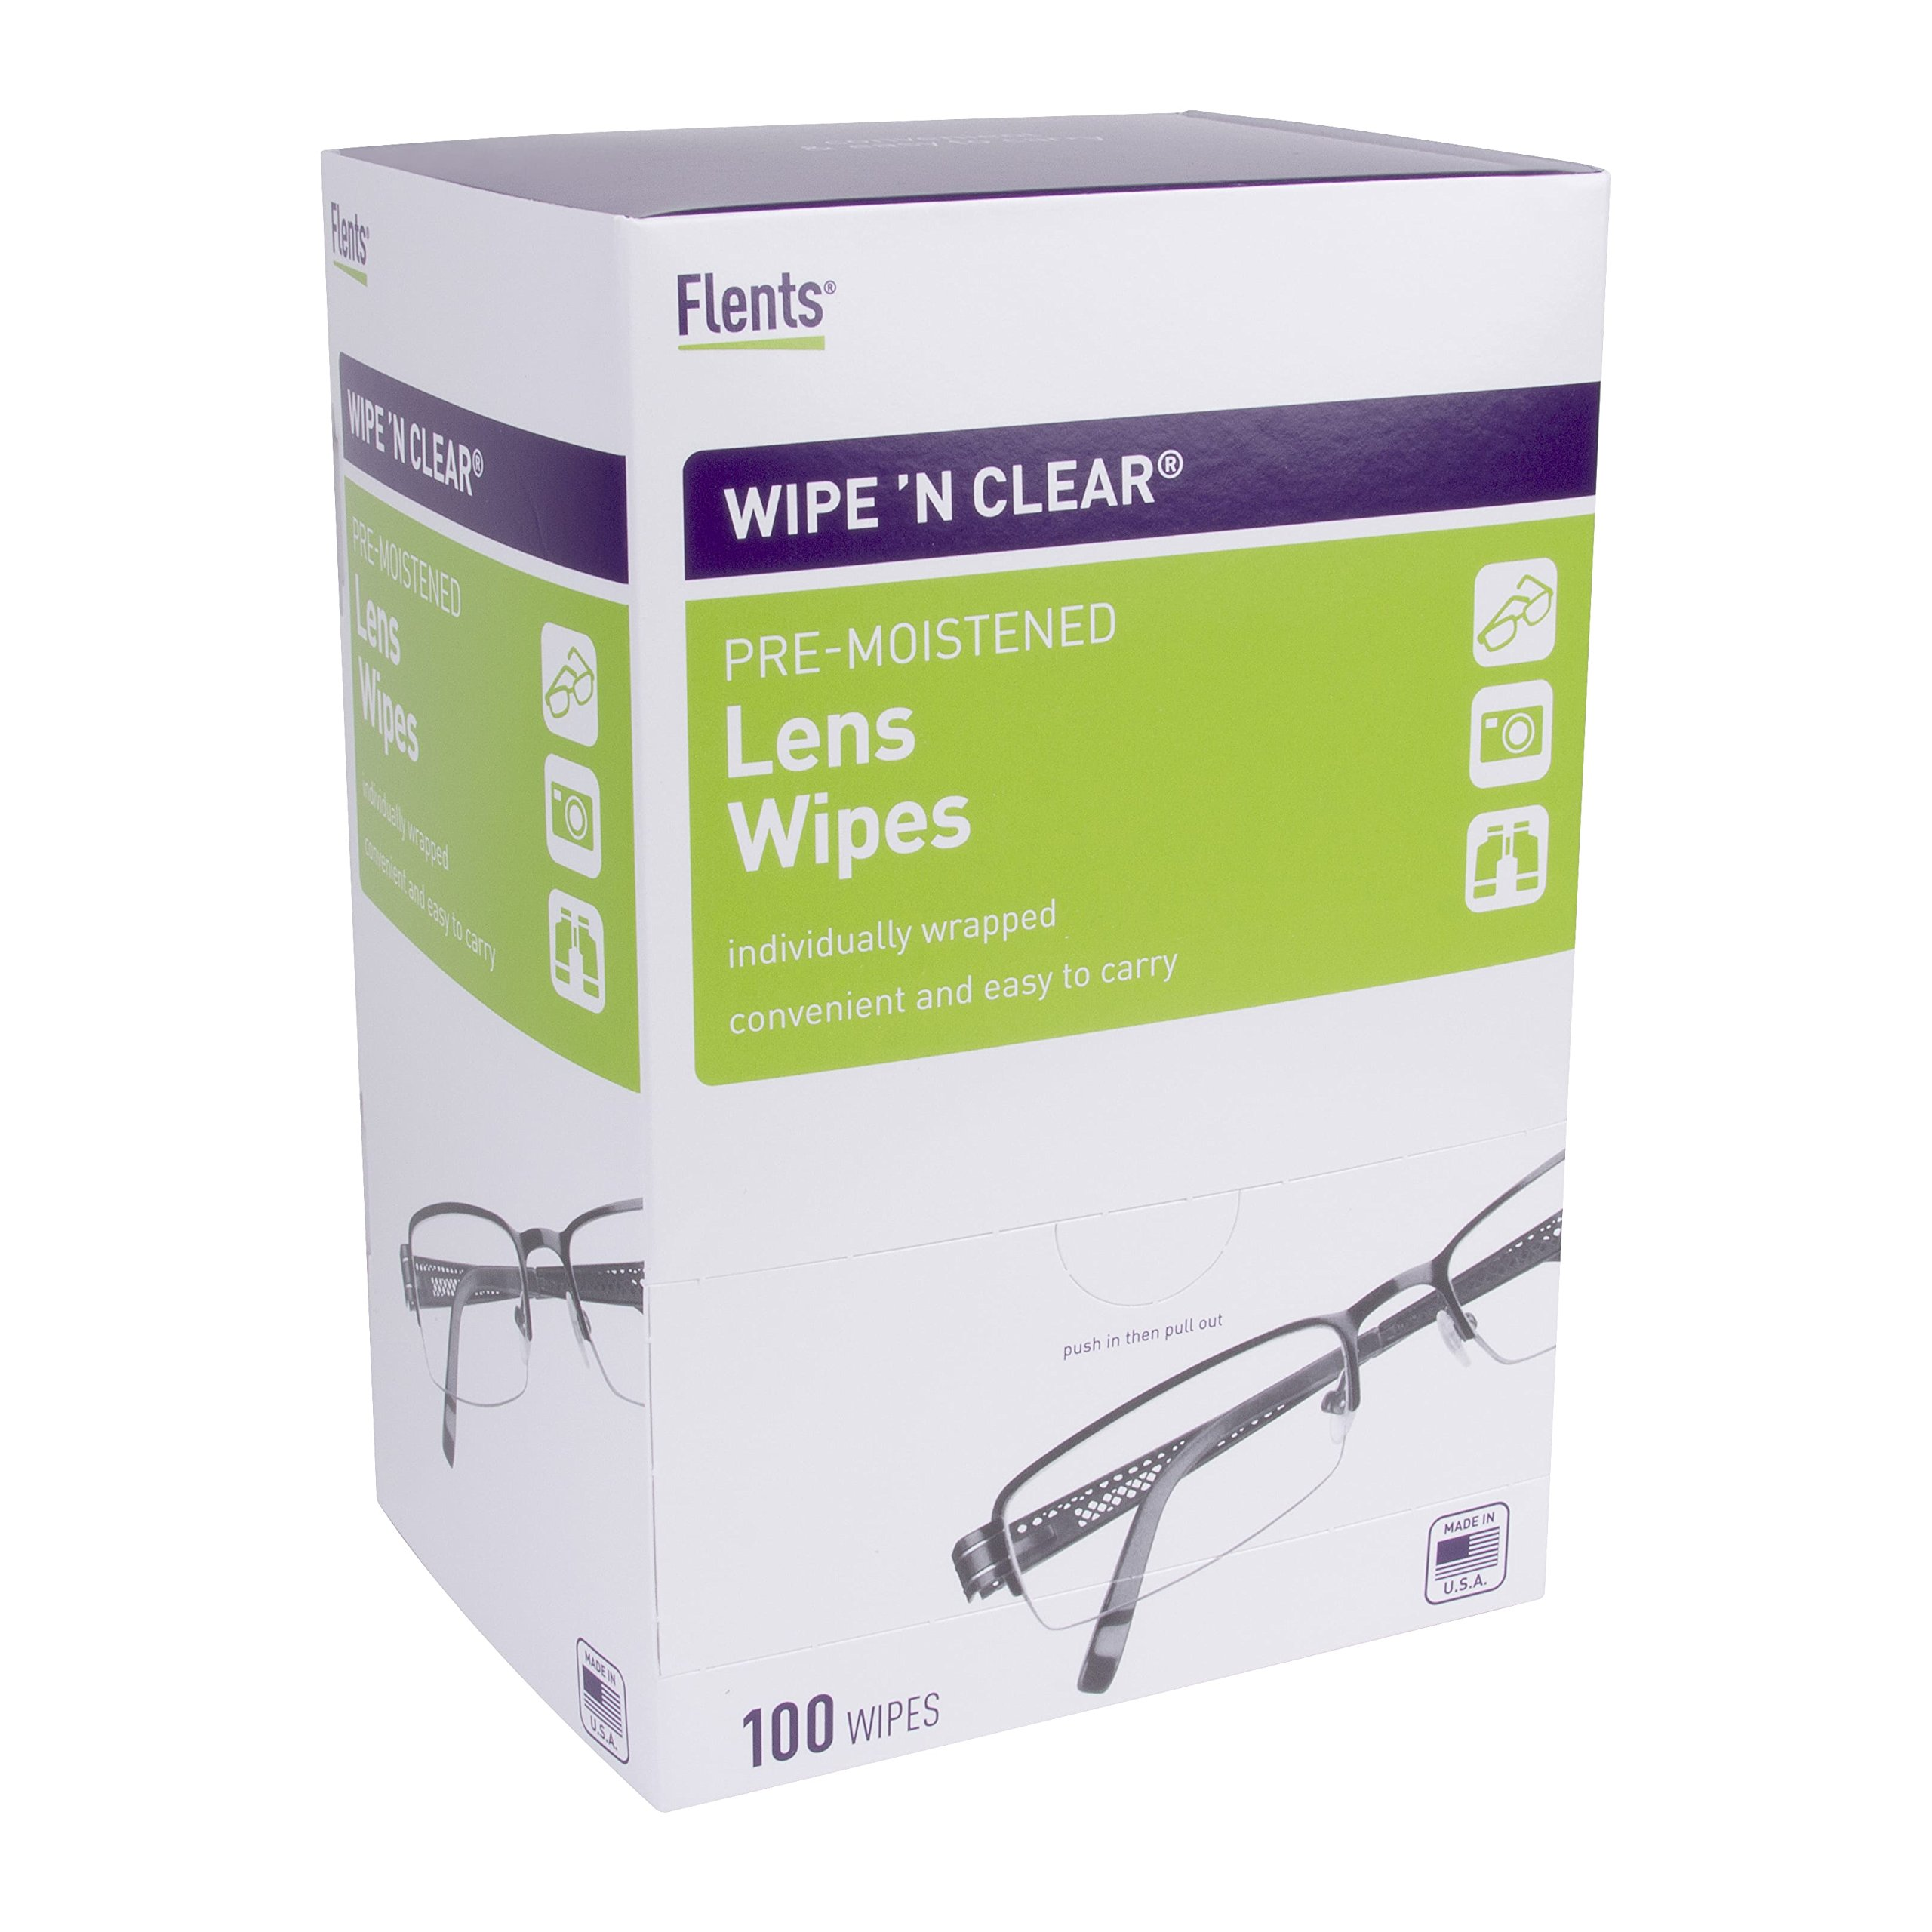 """Wipe'N Clear Lens Wipes by Flents, 100 Lens Cleaning Wipes, Anti-Streak & Fast Drying, 5""""x6"""", 4 Portable Boxed of 75 Wipes"""